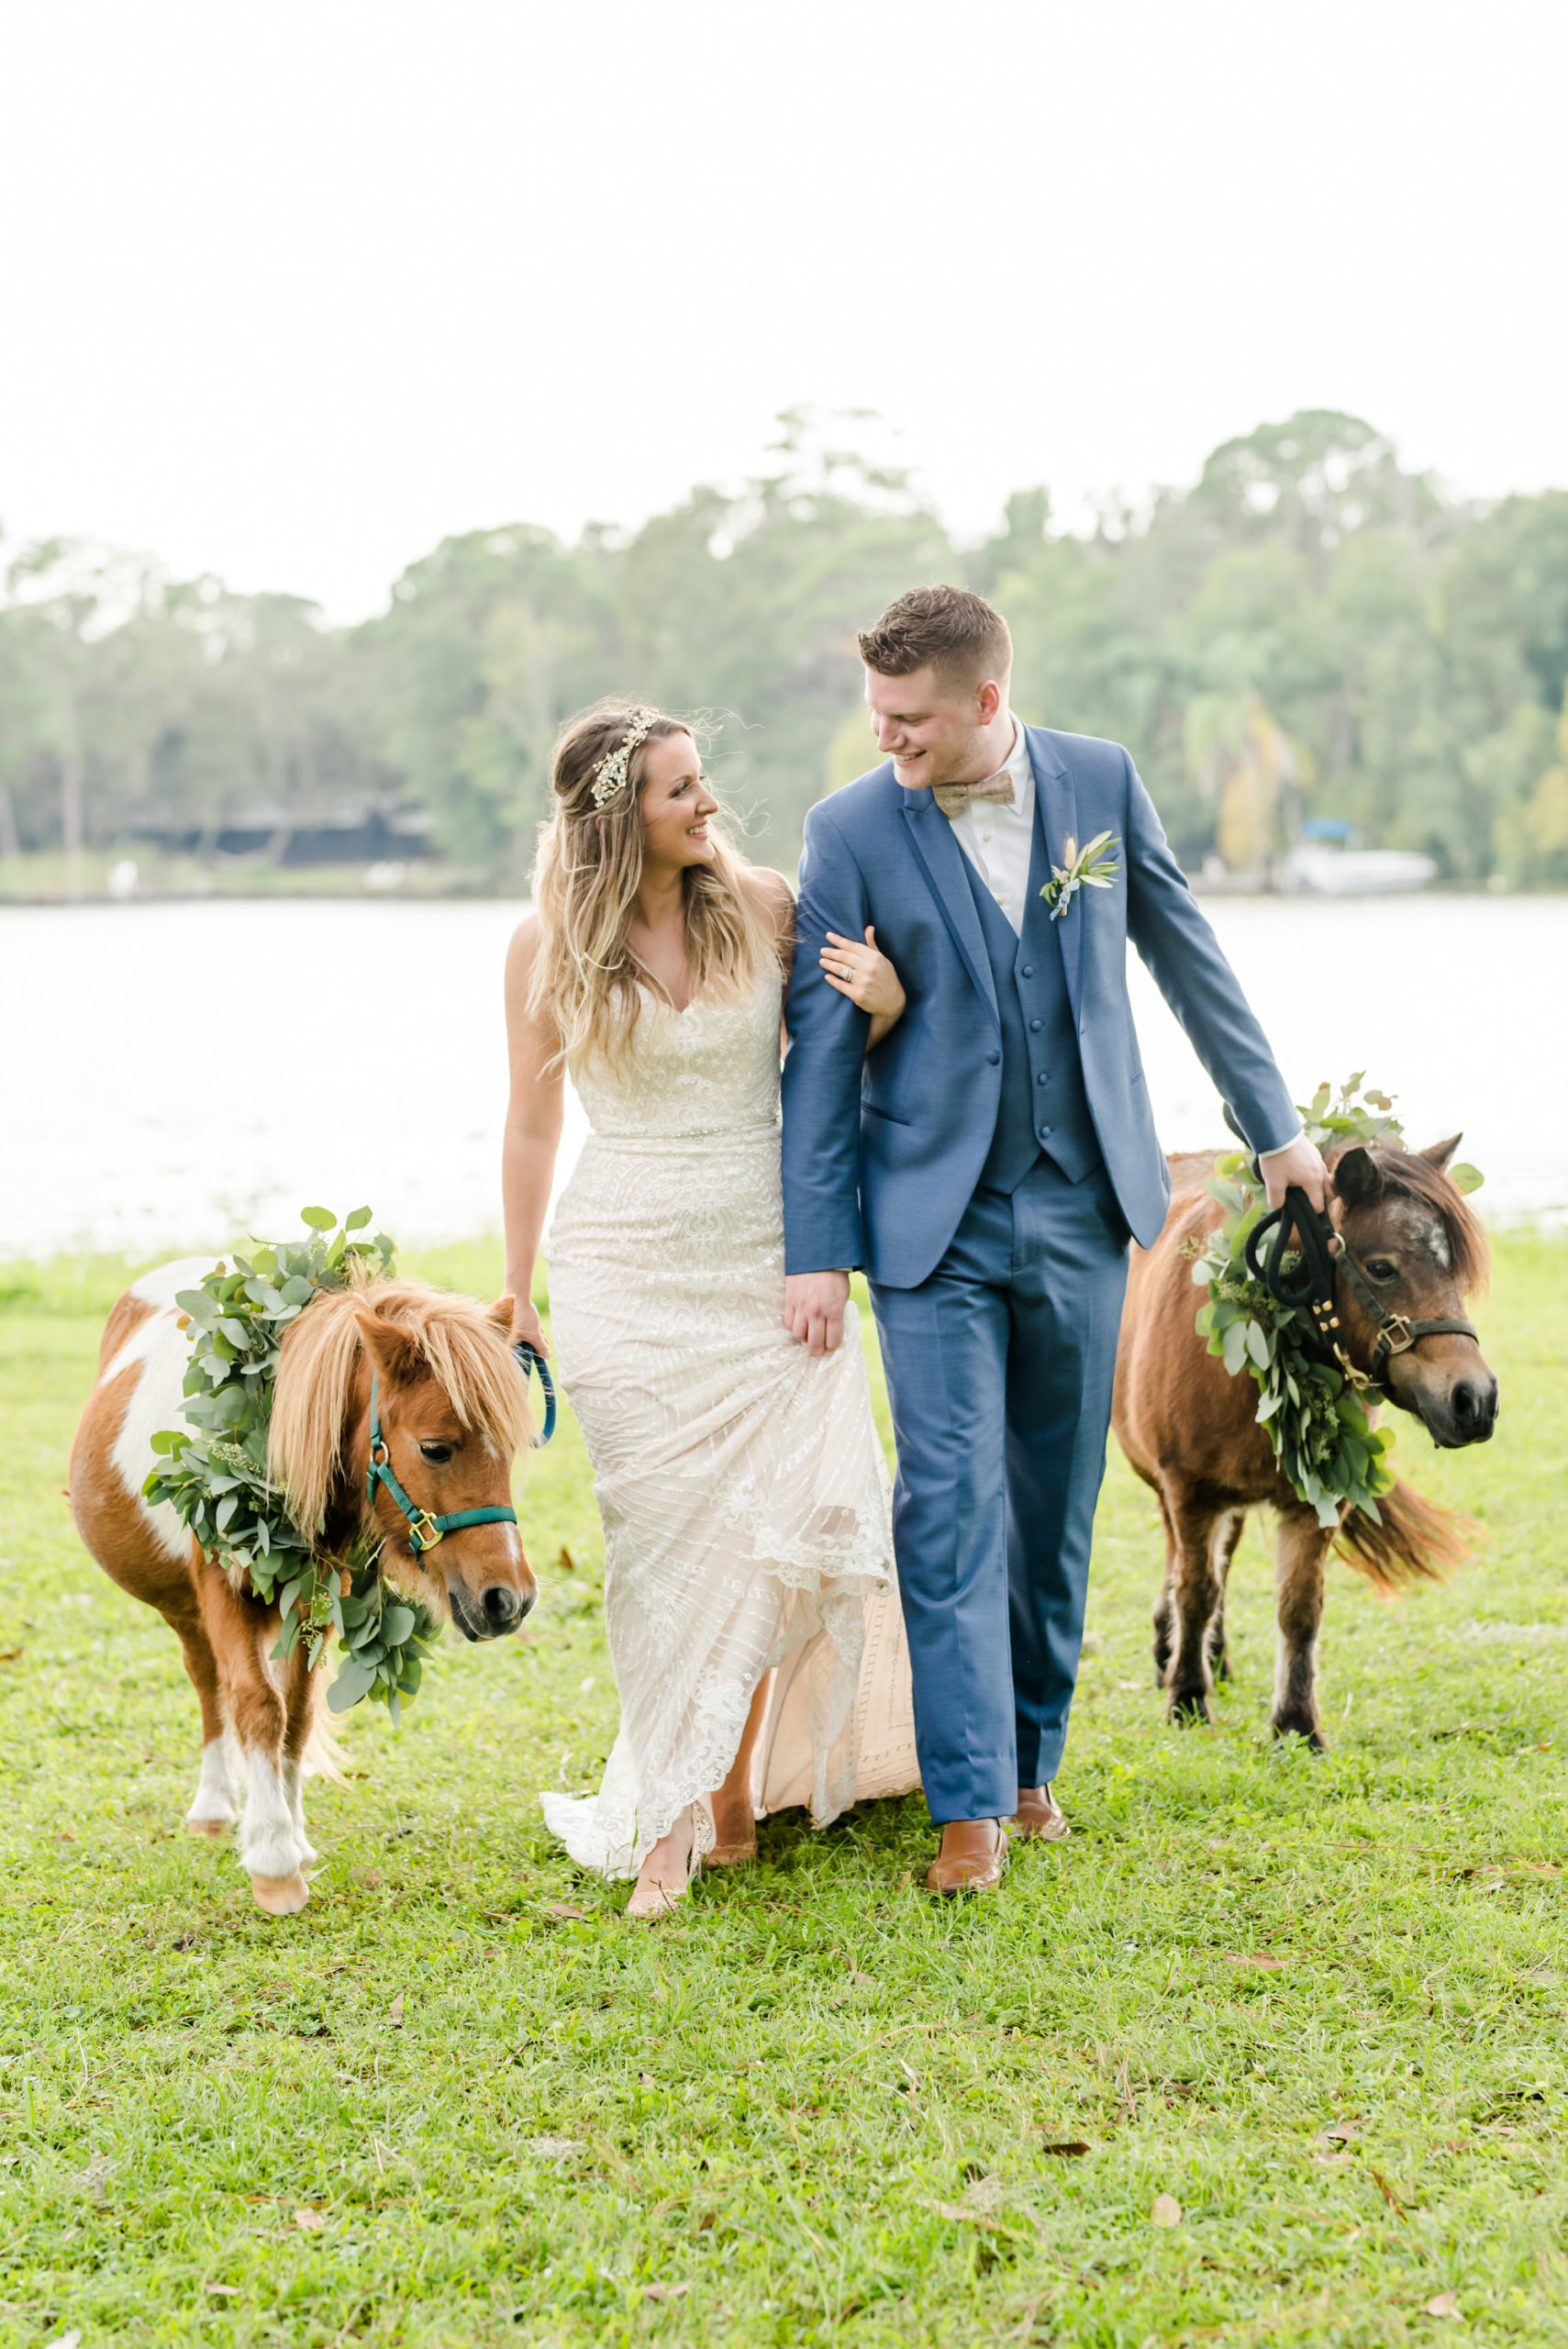 Florida Bride and Groom Wedding Portrait with Minature Ponies, Bride Wearing Strapless Beaded Sheath Wedding Dress, Groom in Muted Navy Suit, with Greenery Eucalyptus Leaves for Formal Pet Collar